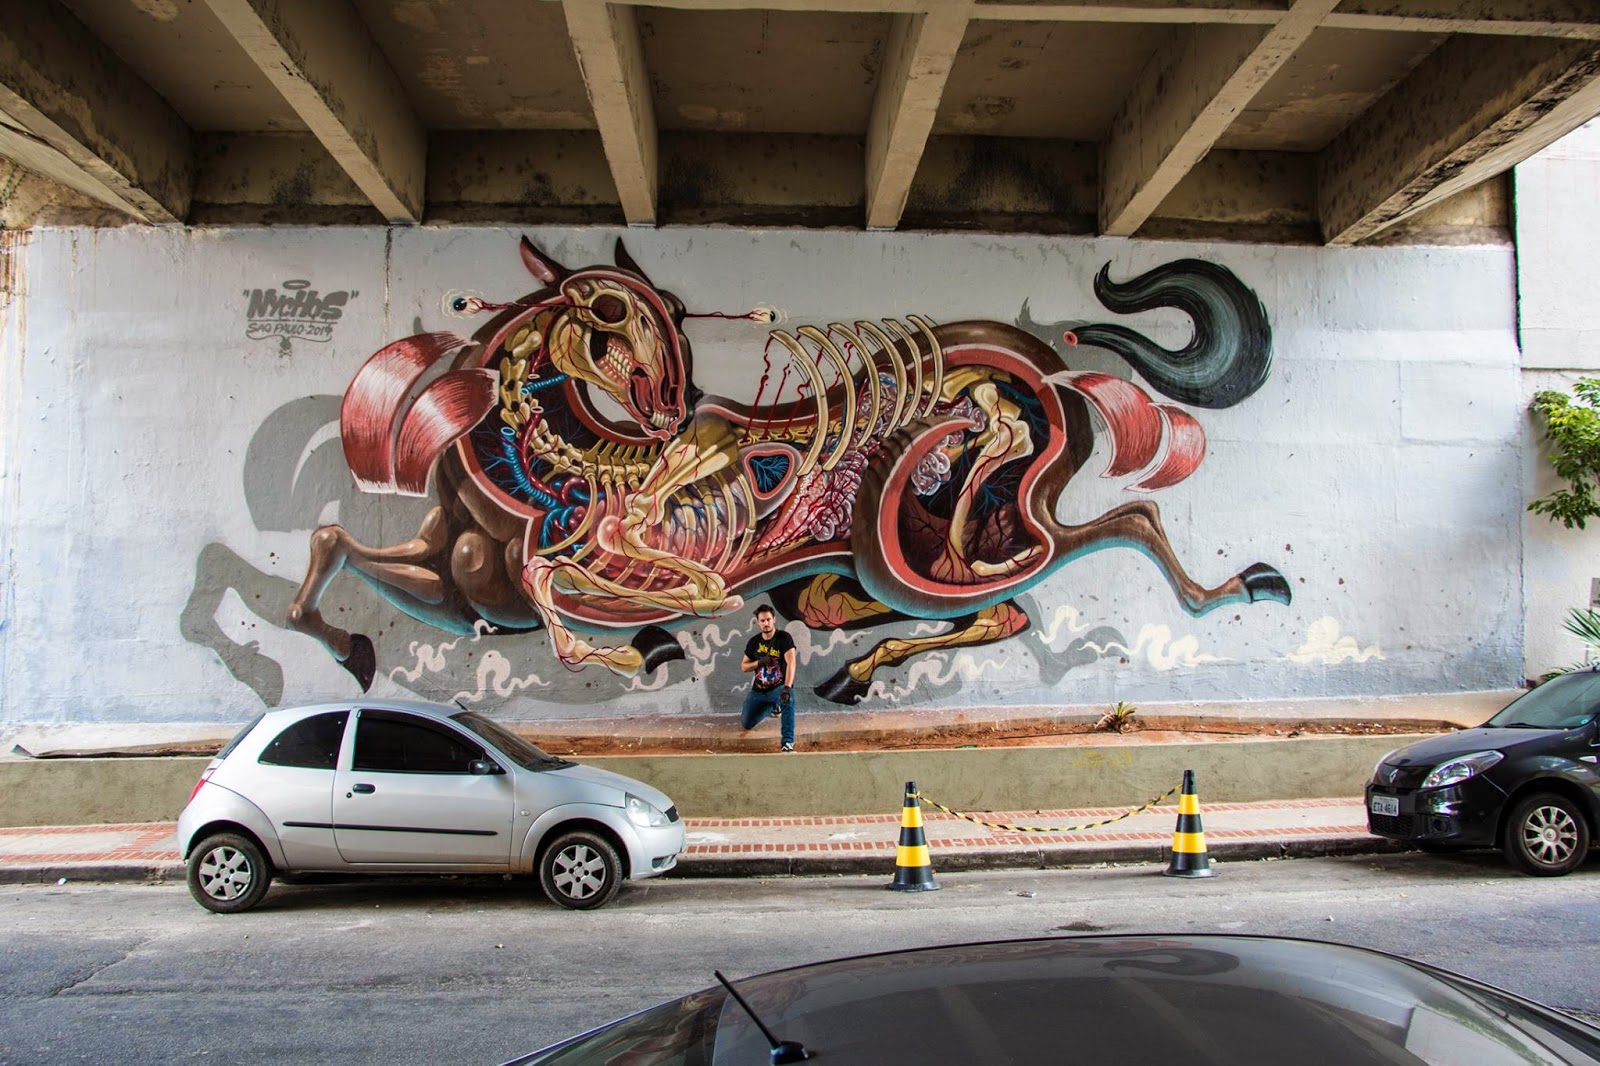 Last seen in Berlin, Germany last month for Urban Spree (covered), Nychos is now in South America where he just finished another signature piece somewhere on the streets of Sao Paulo in Brazil.